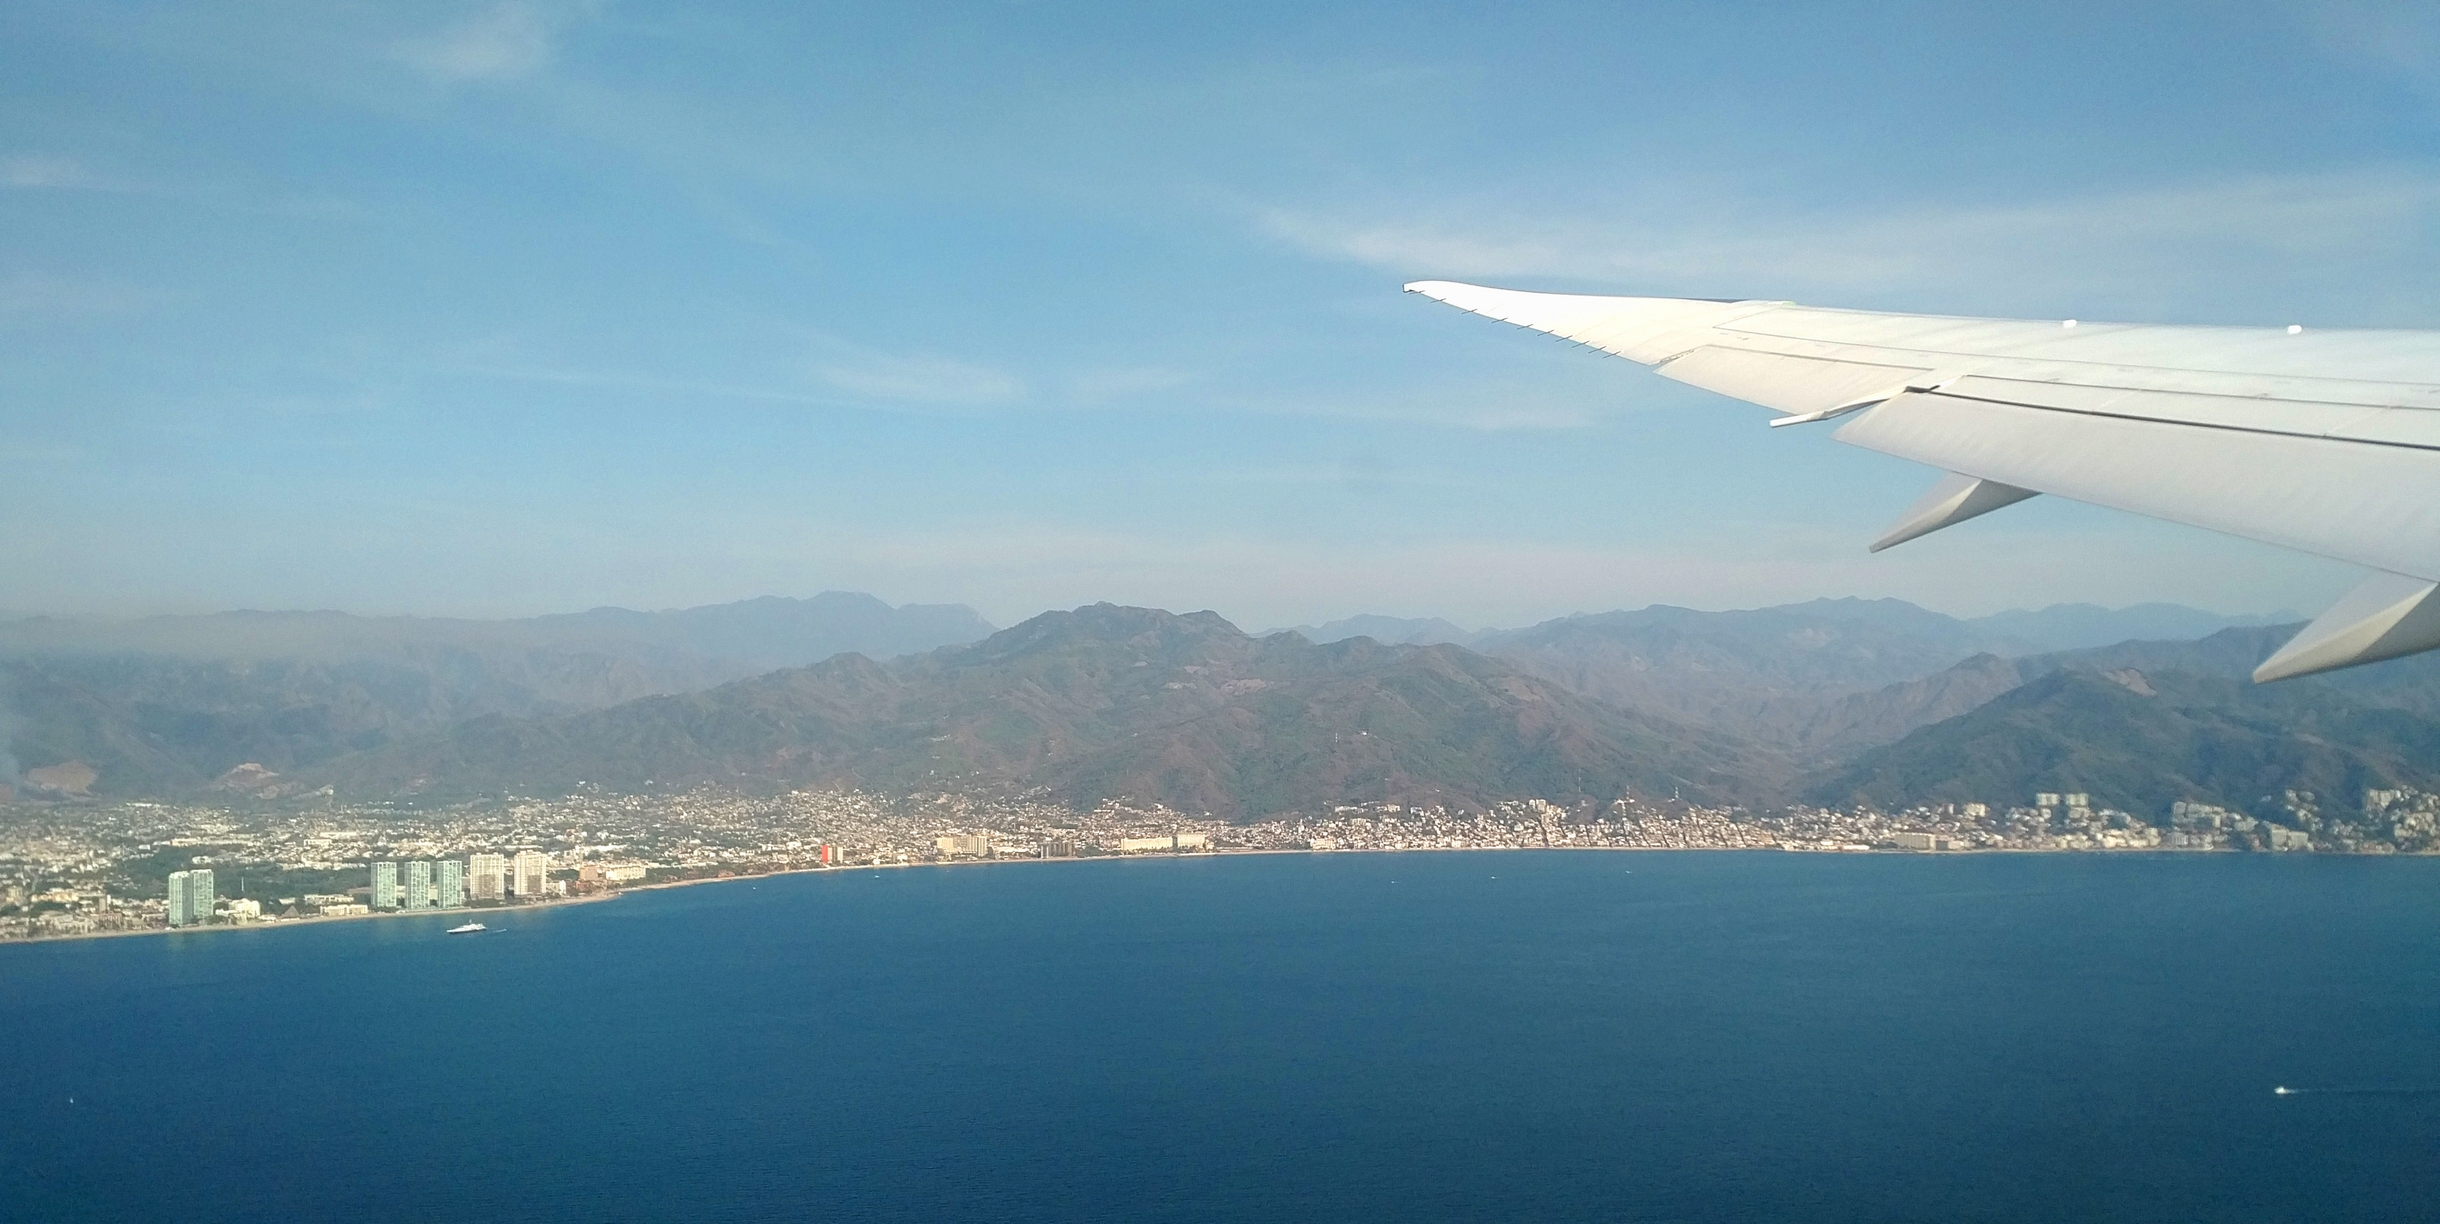 View of Puerto Vallarta from the plane